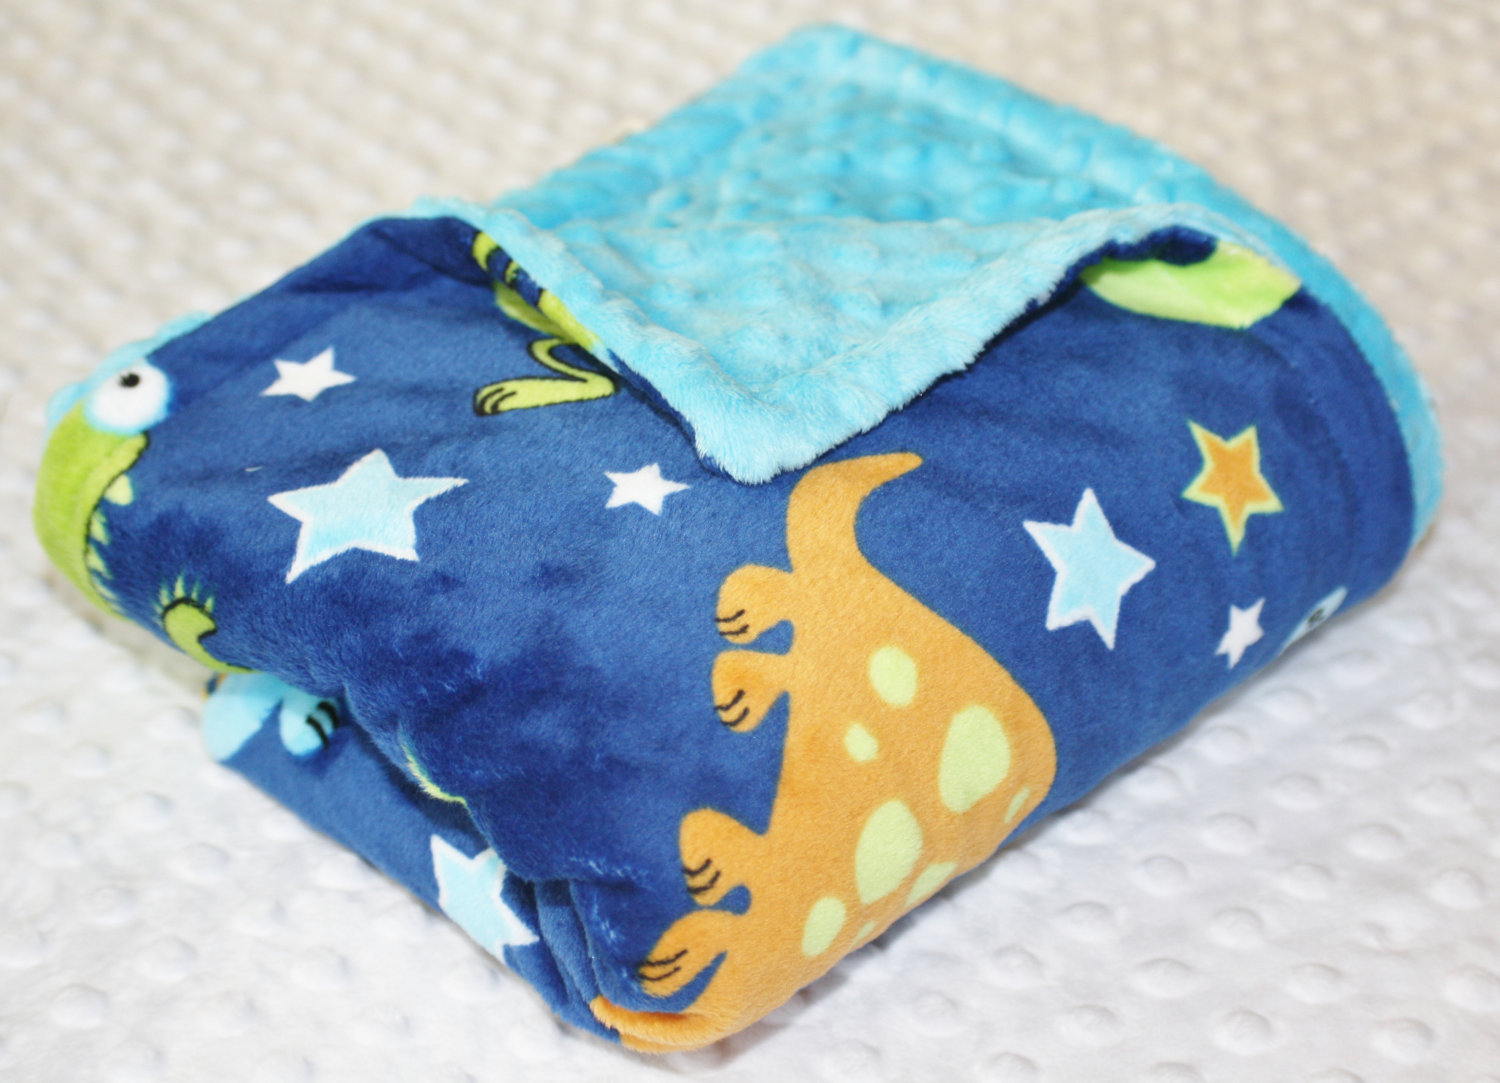 27c3a2978b Large Minky Blanket - Cartoon Dinosaurs on Navy Blue Minky with a ...